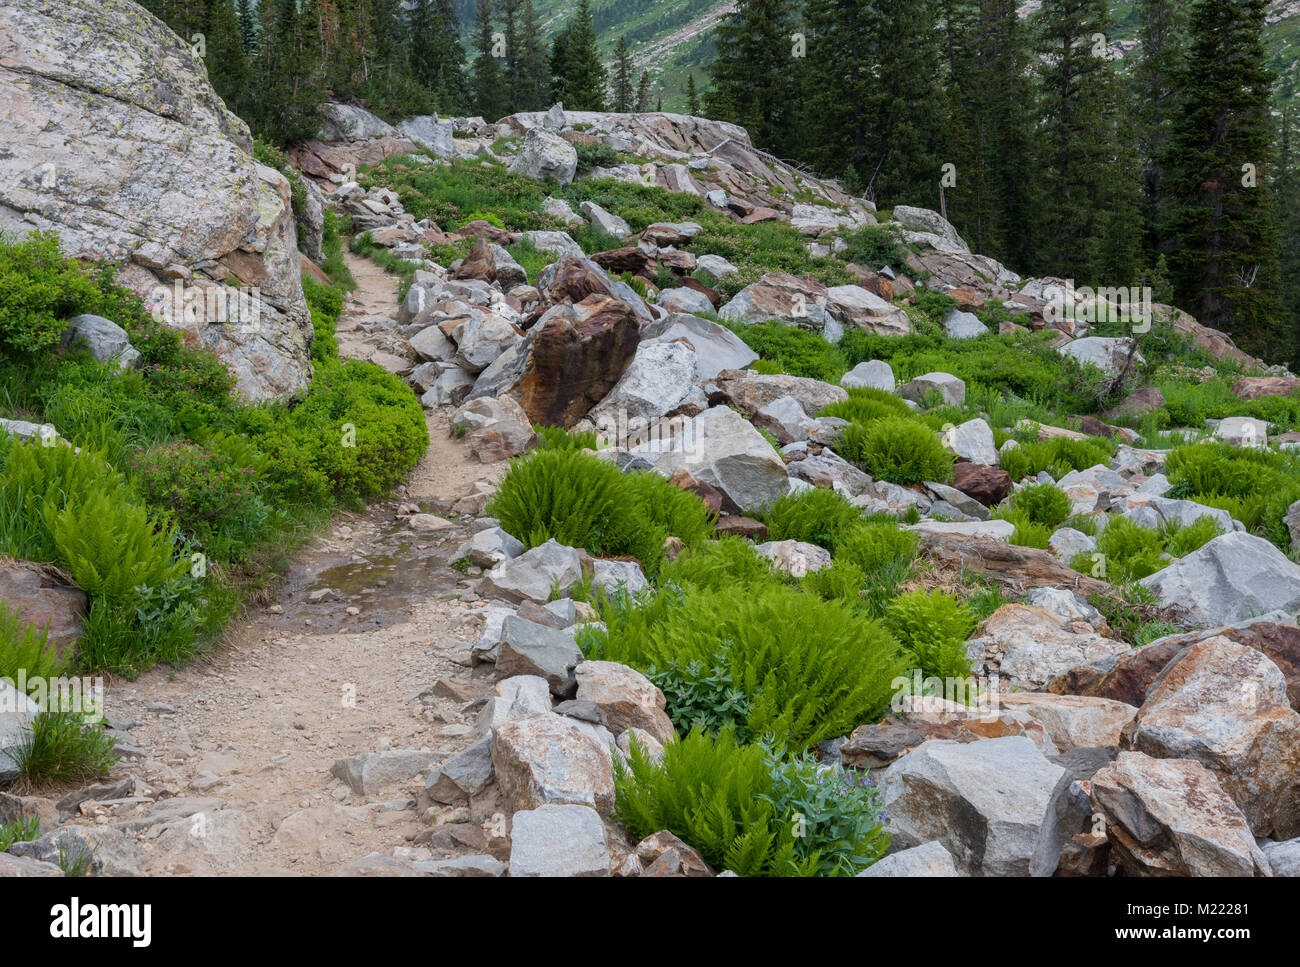 Trail Cuts Through Boulders and Bright Green Ferns in Wyoming wilderness - Stock Image